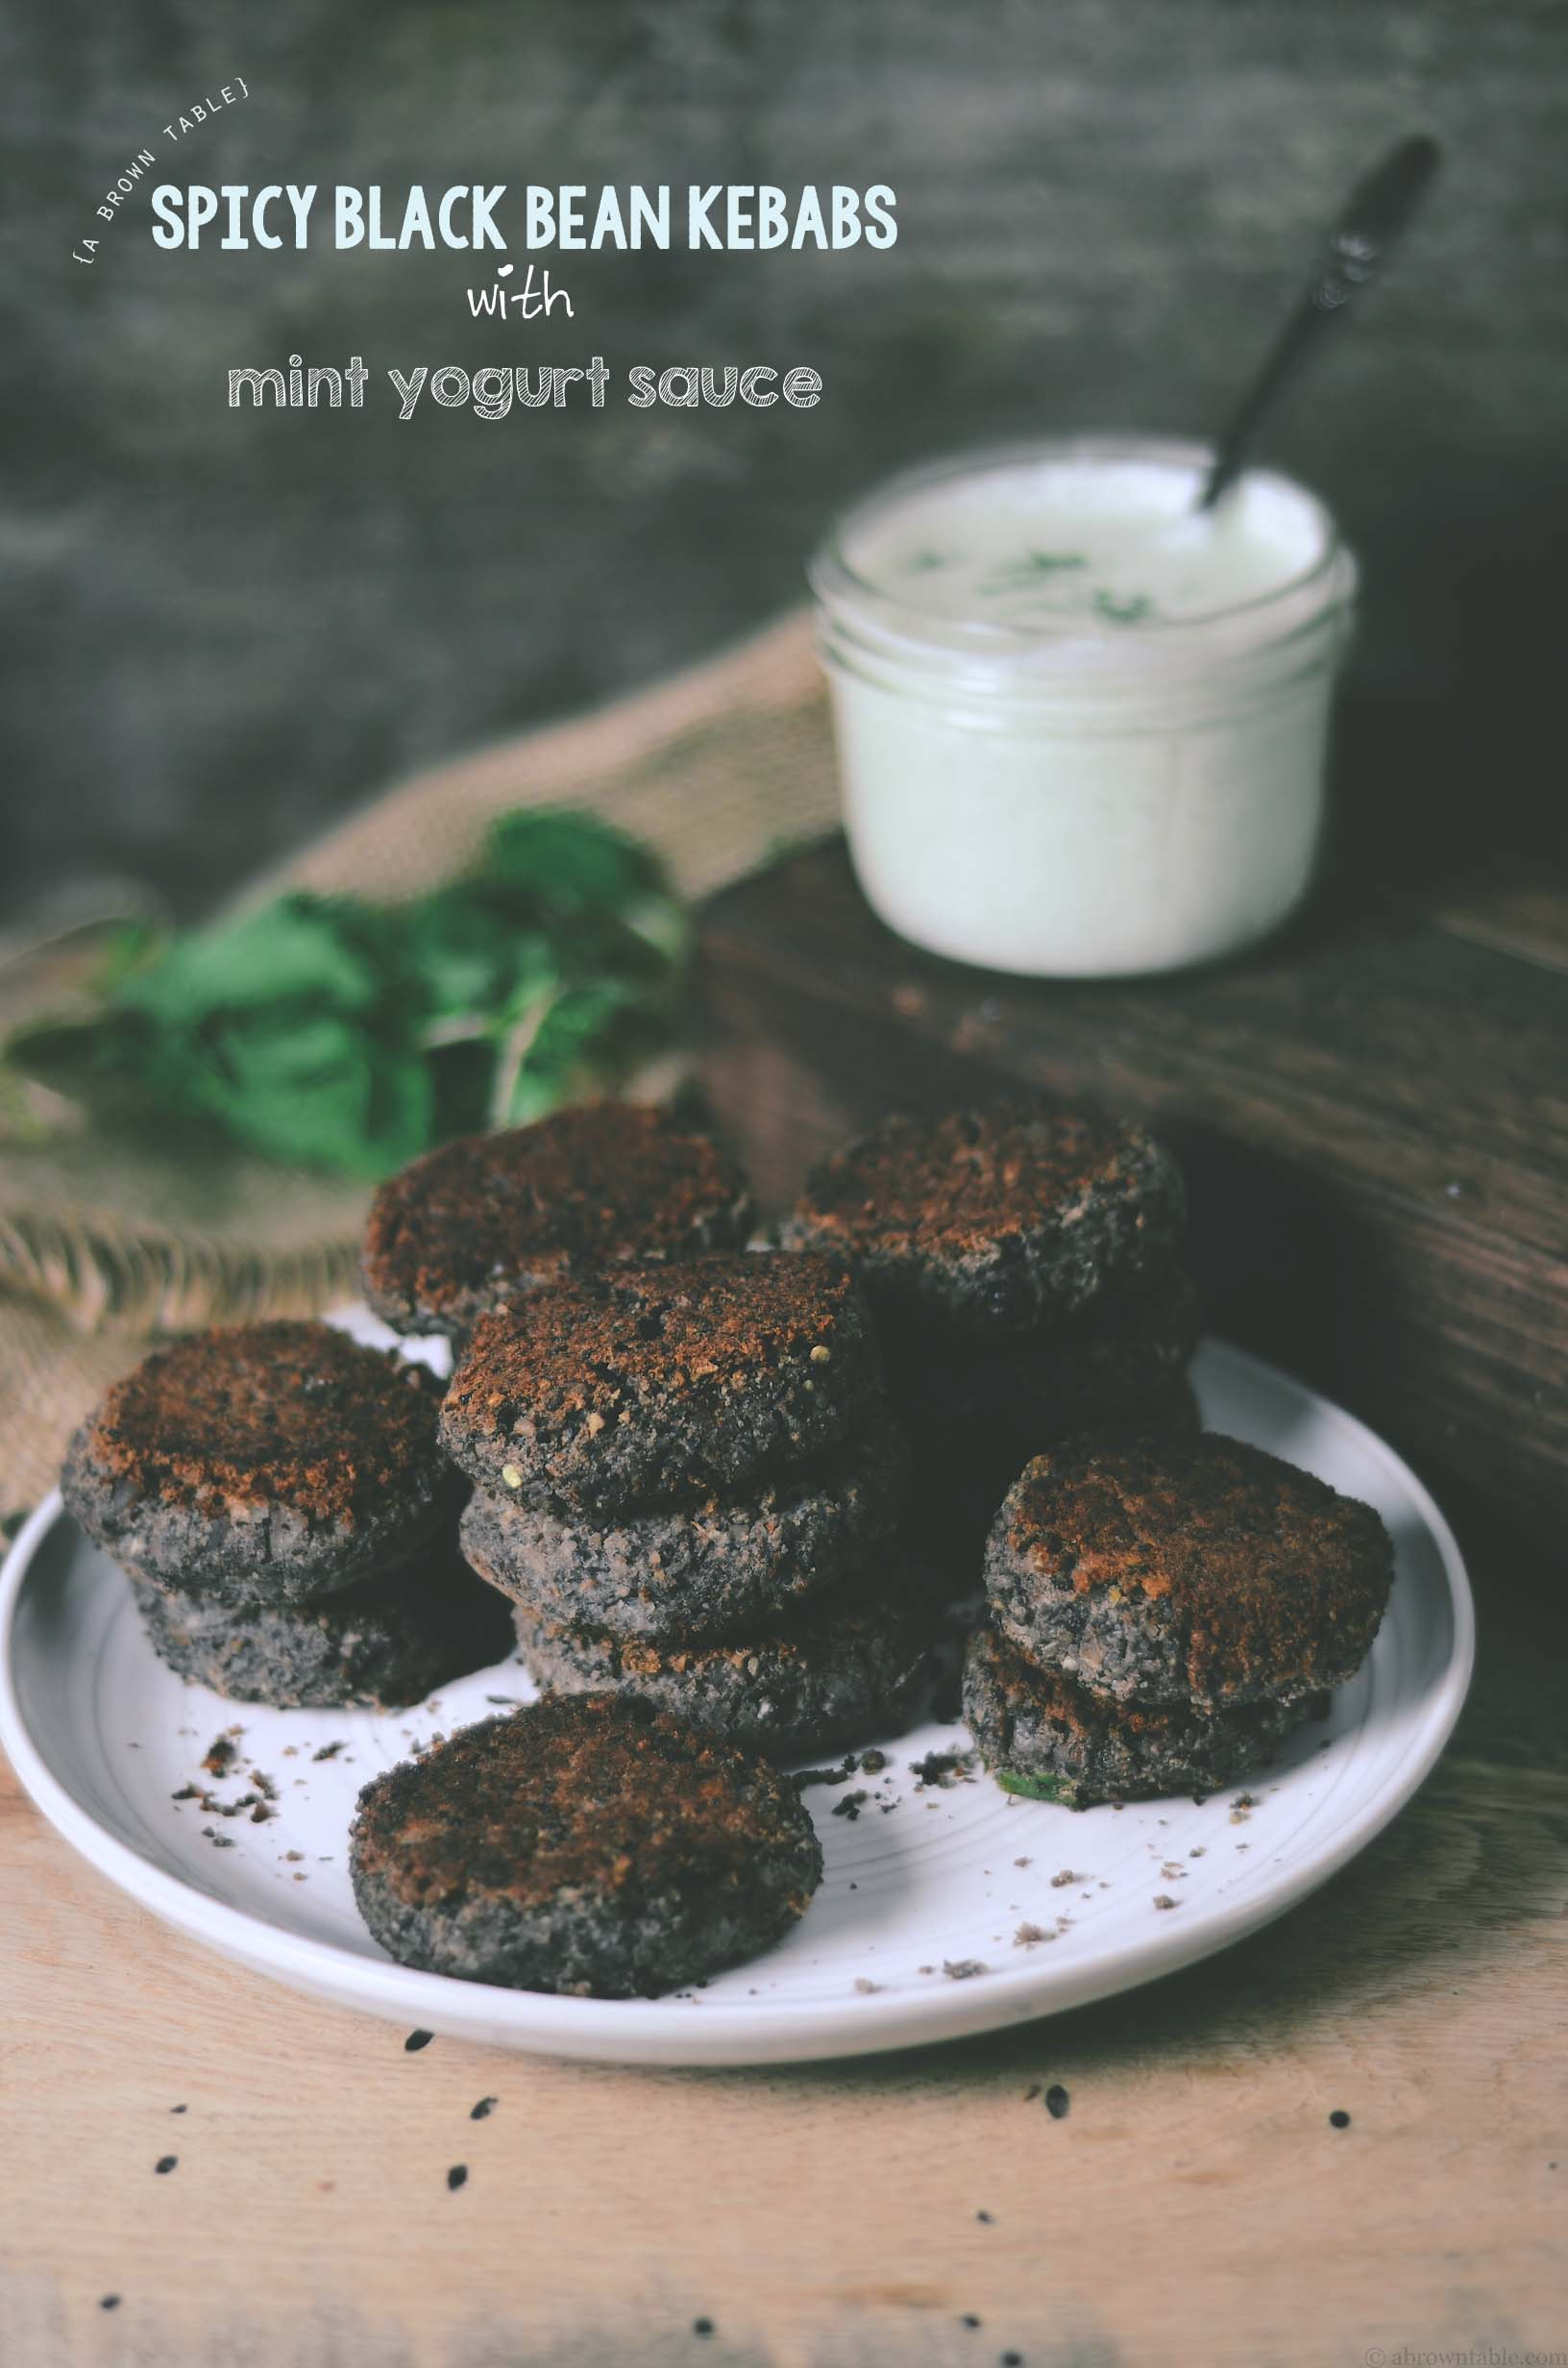 spicy black bean kebabs with mint yogurt sauce